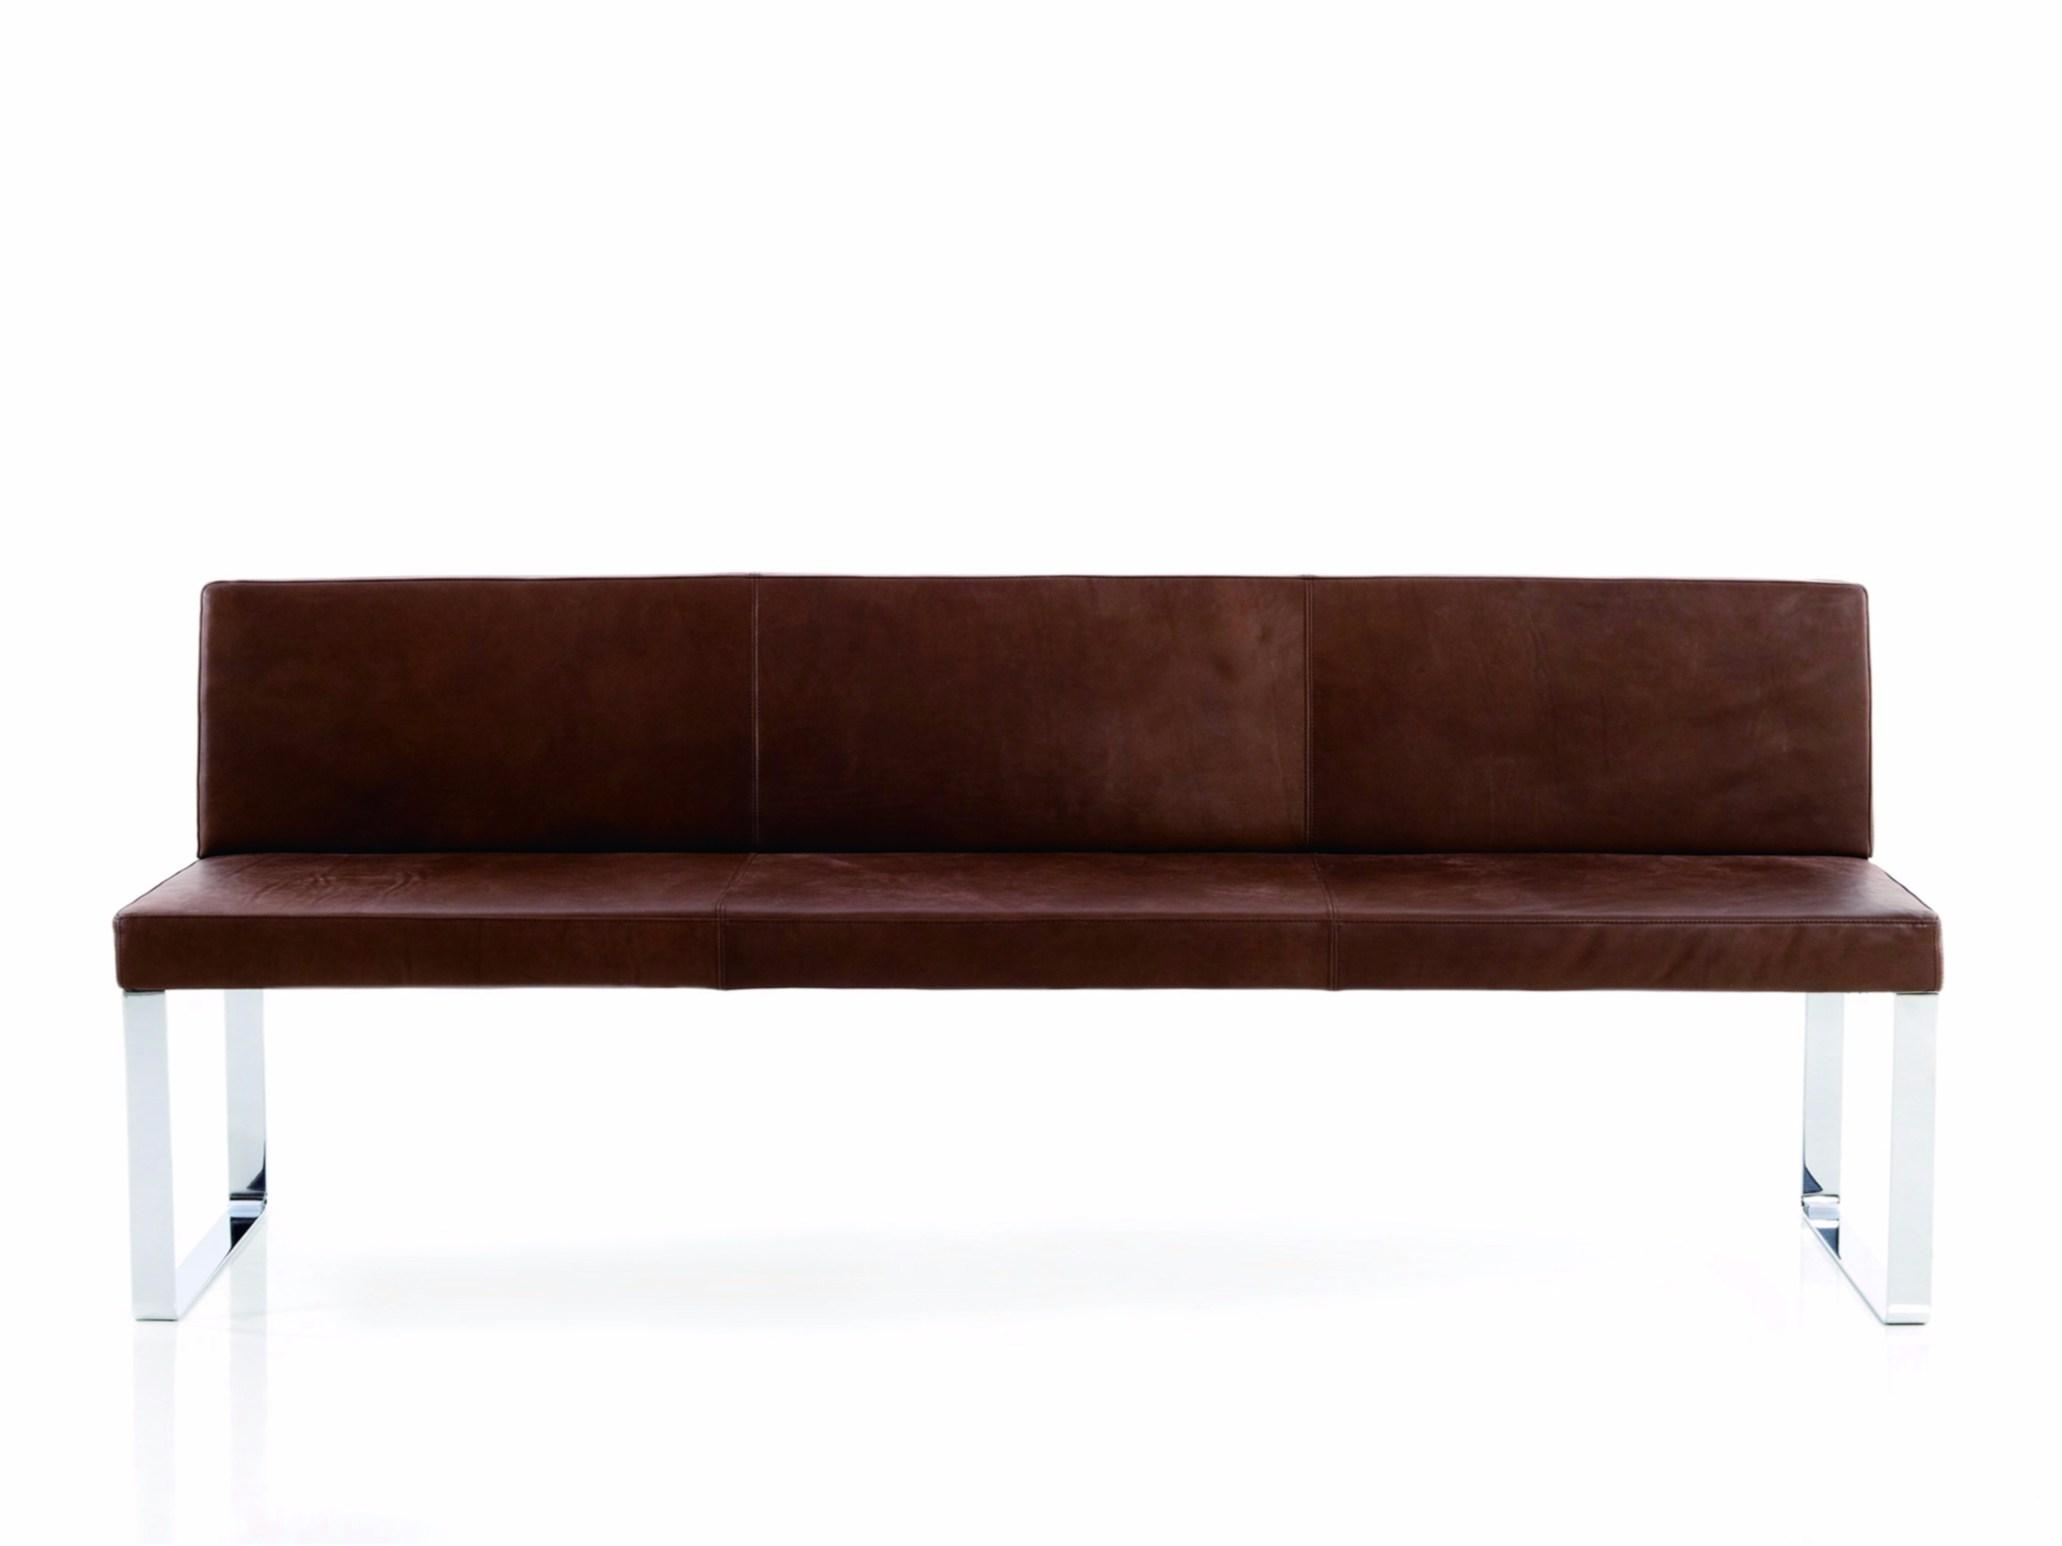 Bench: Leather Bench Sofa Leather Bench Sofa Leather Bench Storage With Regard To Leather Bench Sofas (View 2 of 22)